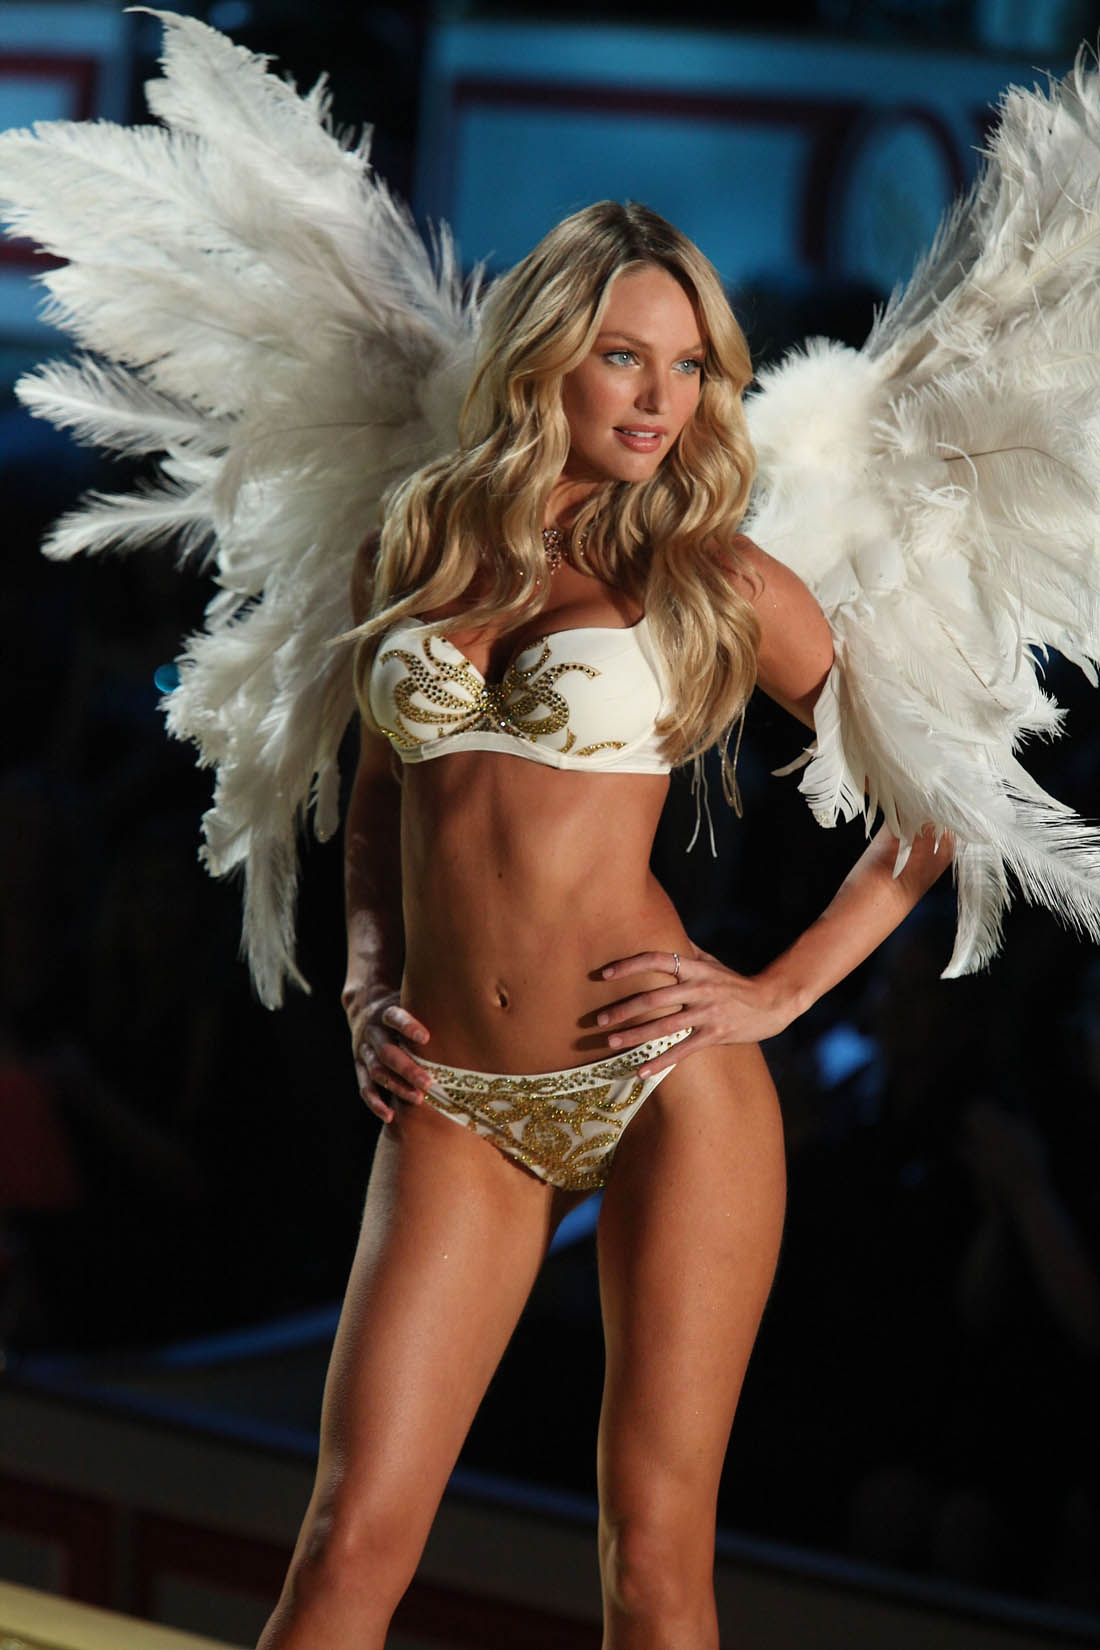 Victoria's Secret Fashion Show 2010 Totally dug the show